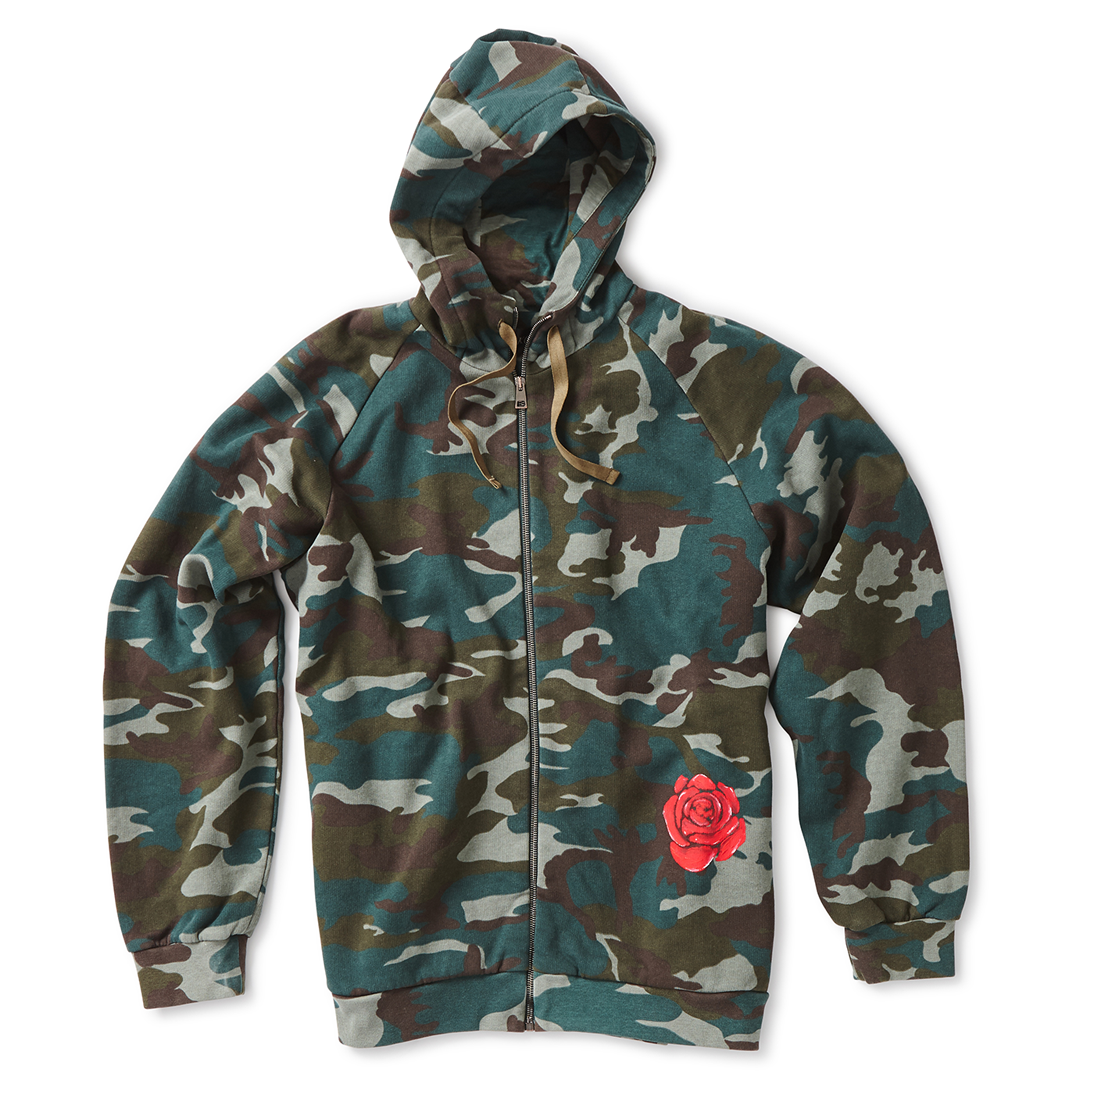 Camo Cotton Hoodie with Rose Print